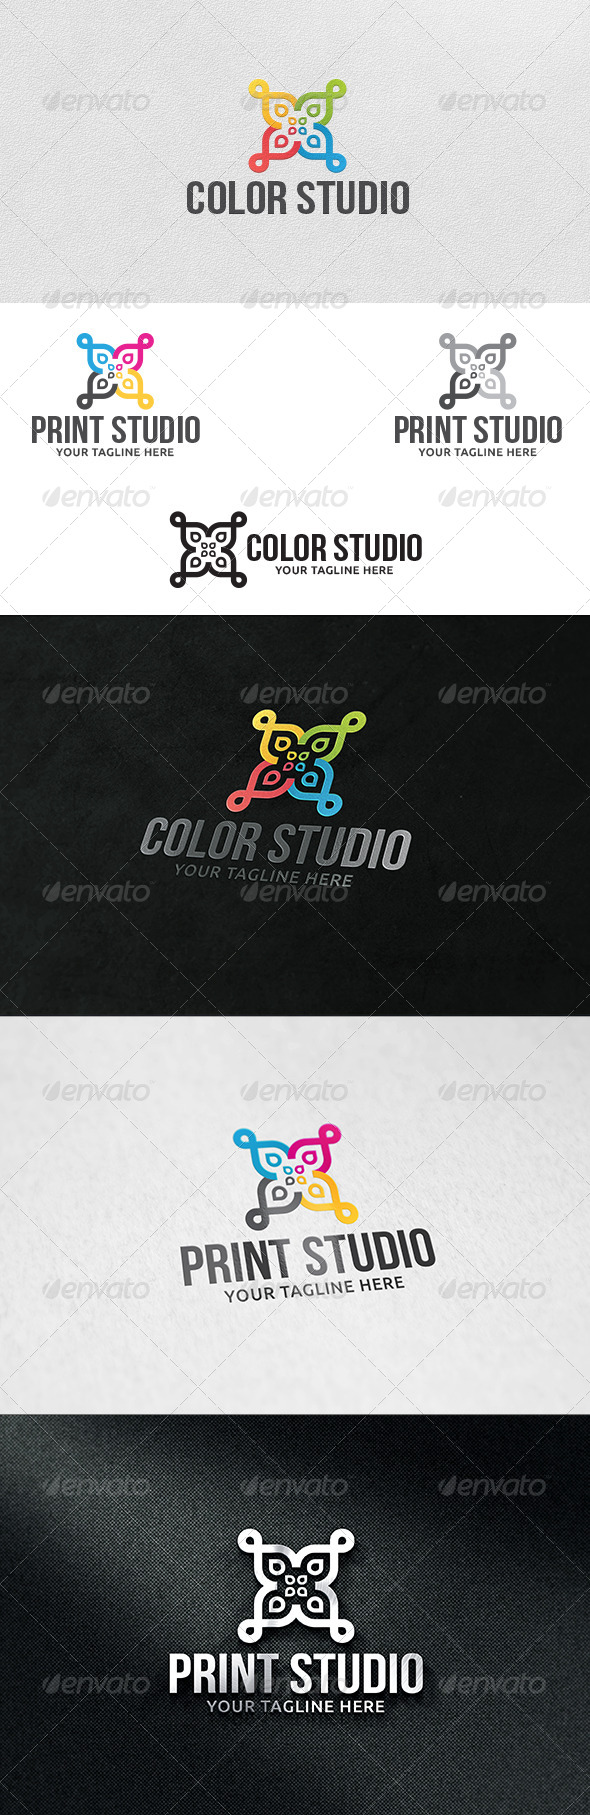 GraphicRiver Print Studio Logo Template 6063279